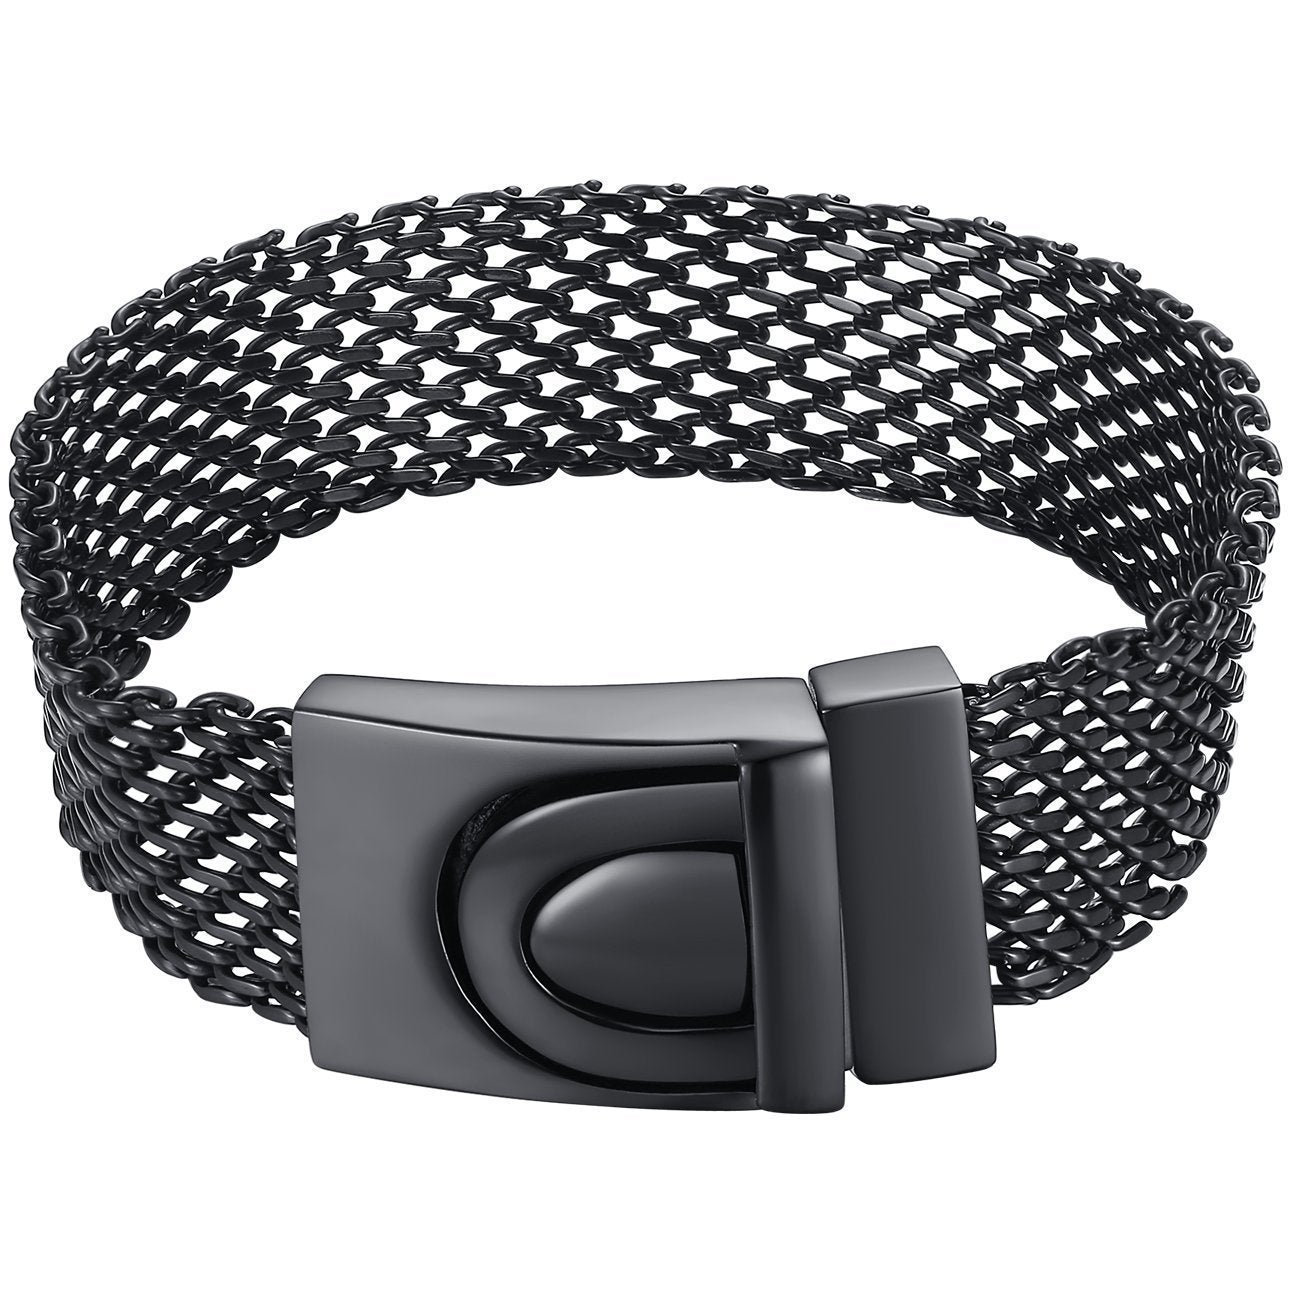 Aoiy Men's Stainless Steel Mesh Chain Belt Style Bracelet (Black-Color)